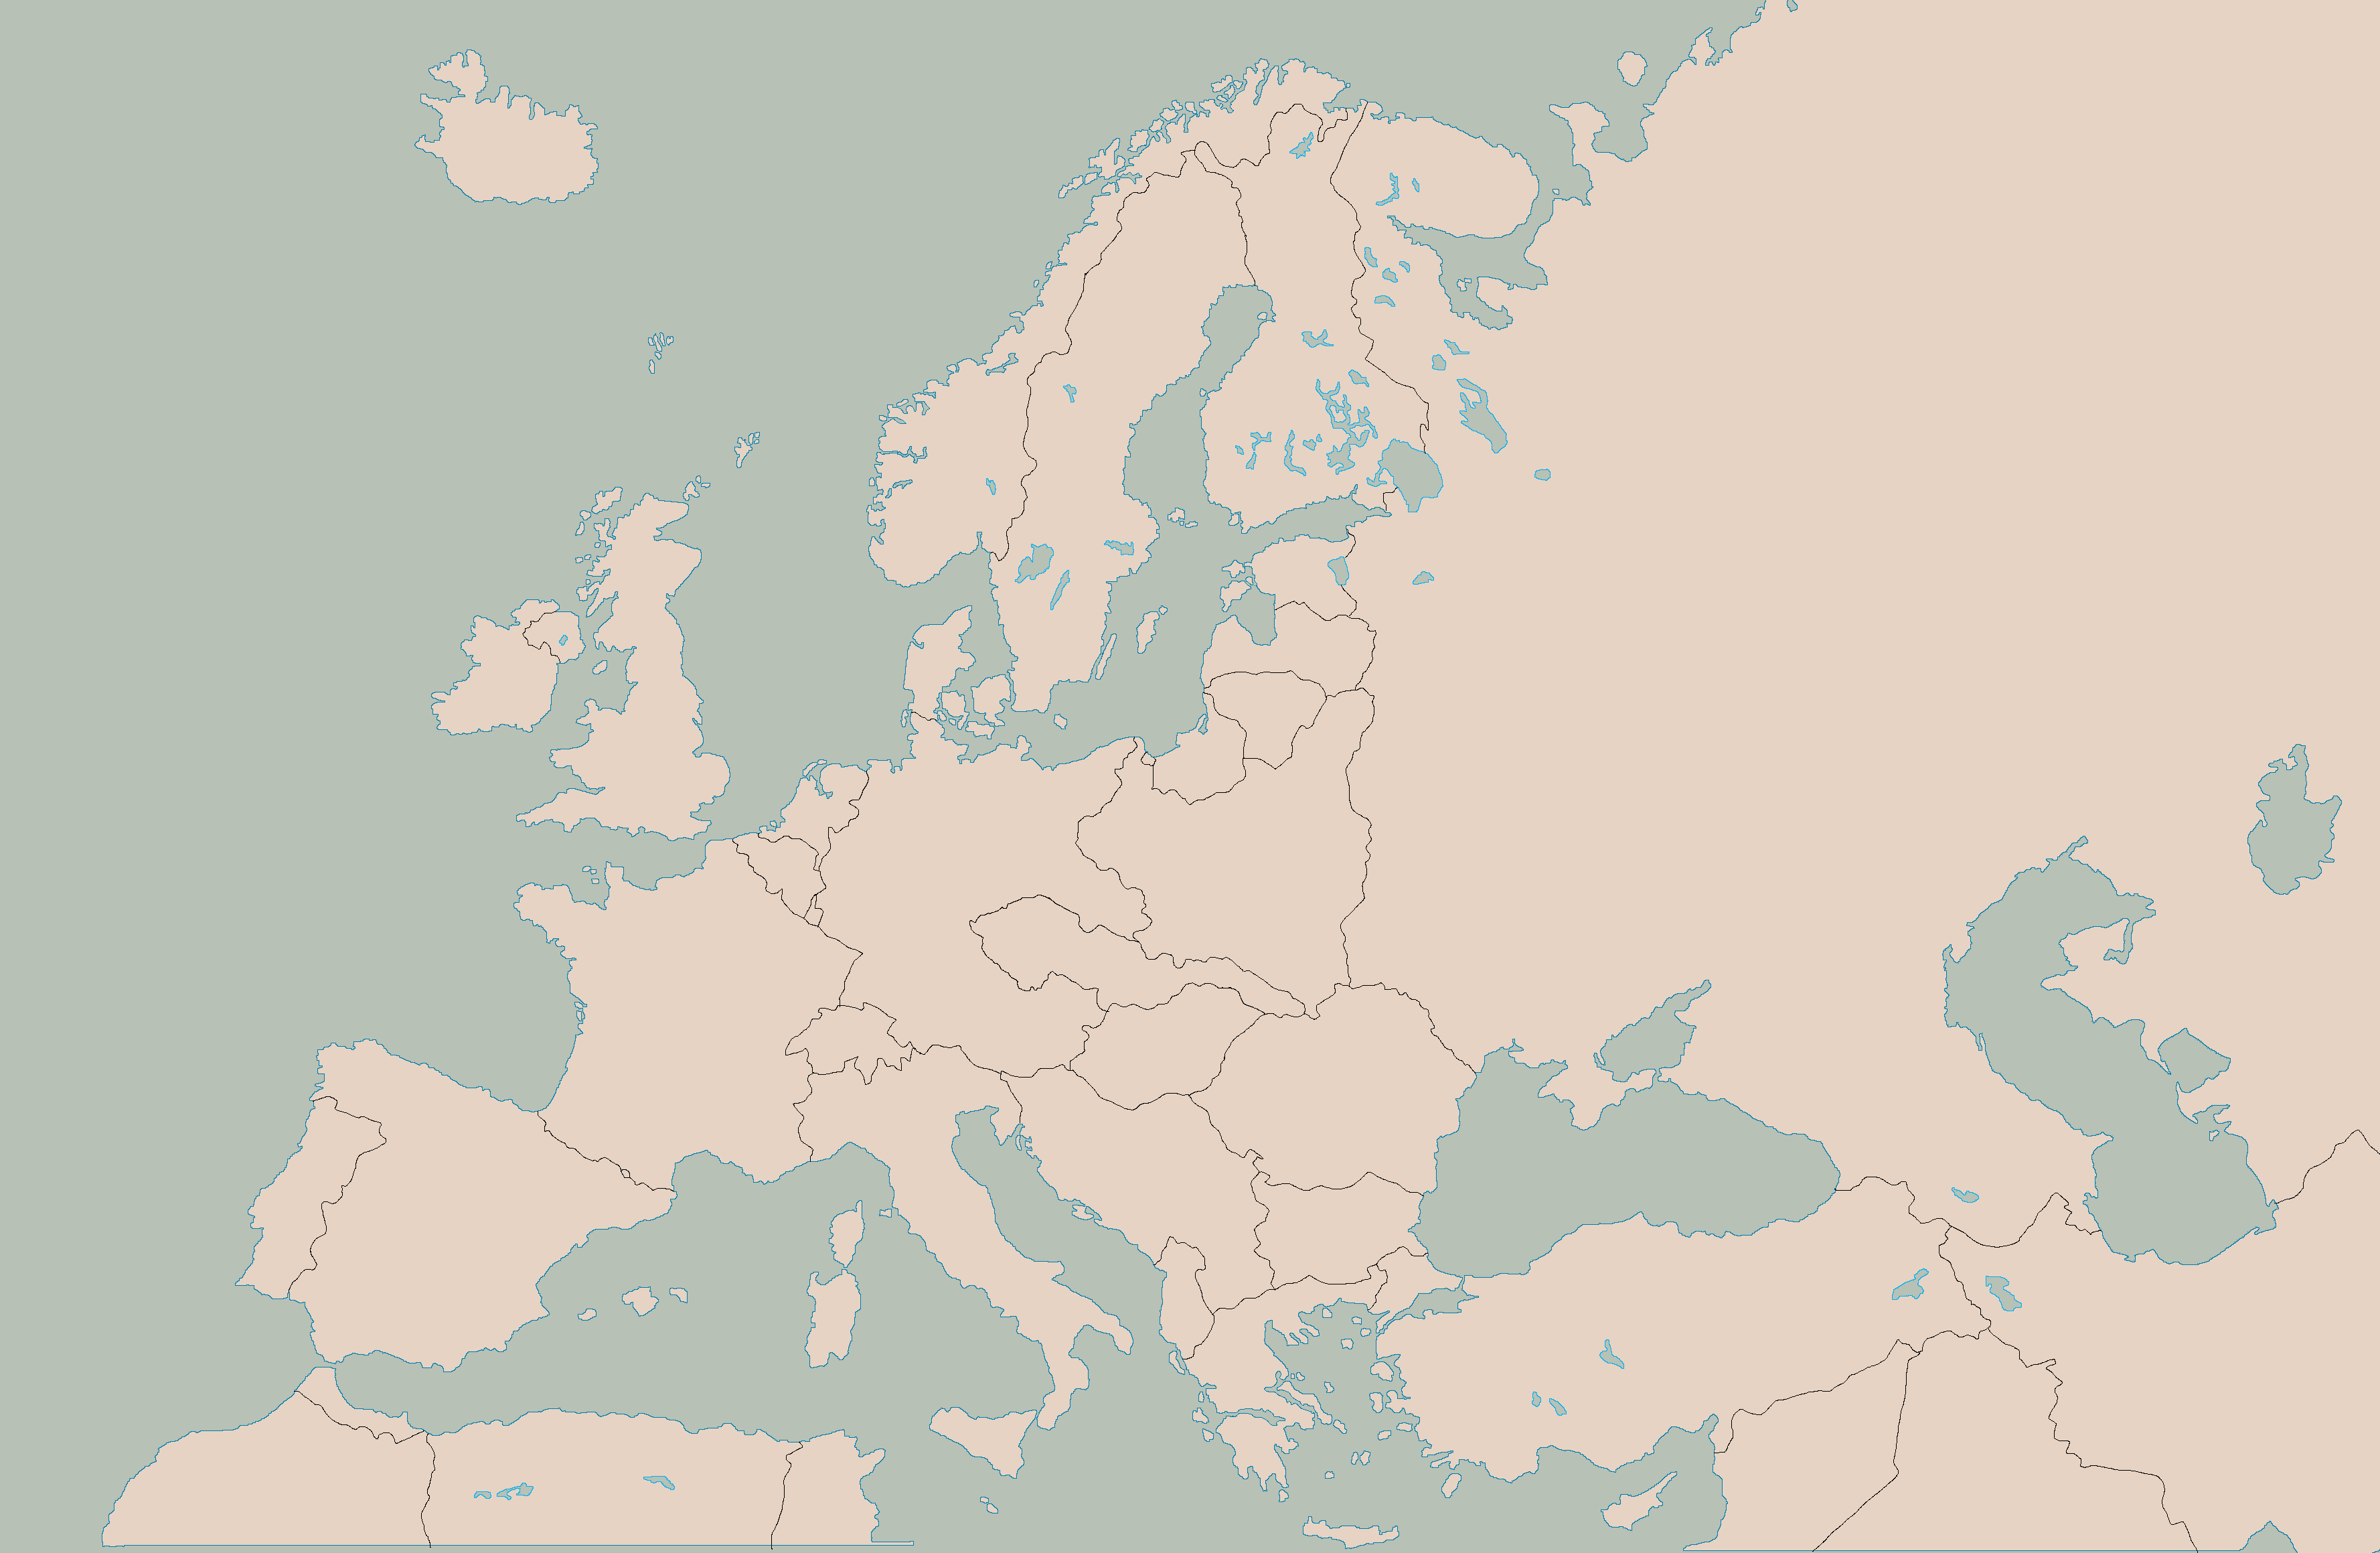 Blank Map of Europe with 1938 borders by Kuusinen on DeviantArt on map of northern europe, large blank of europe, blank europe map printout, blank map of erope, empty map of europe, detailed map of europe, blank map eastern europe 2013, blank geographic map europe, blank city map, countries of europe, unlabeled map of europe, student map of europe, blank atlas of europe, blank map of africa 2014, blank digital africa map, map of western europe,